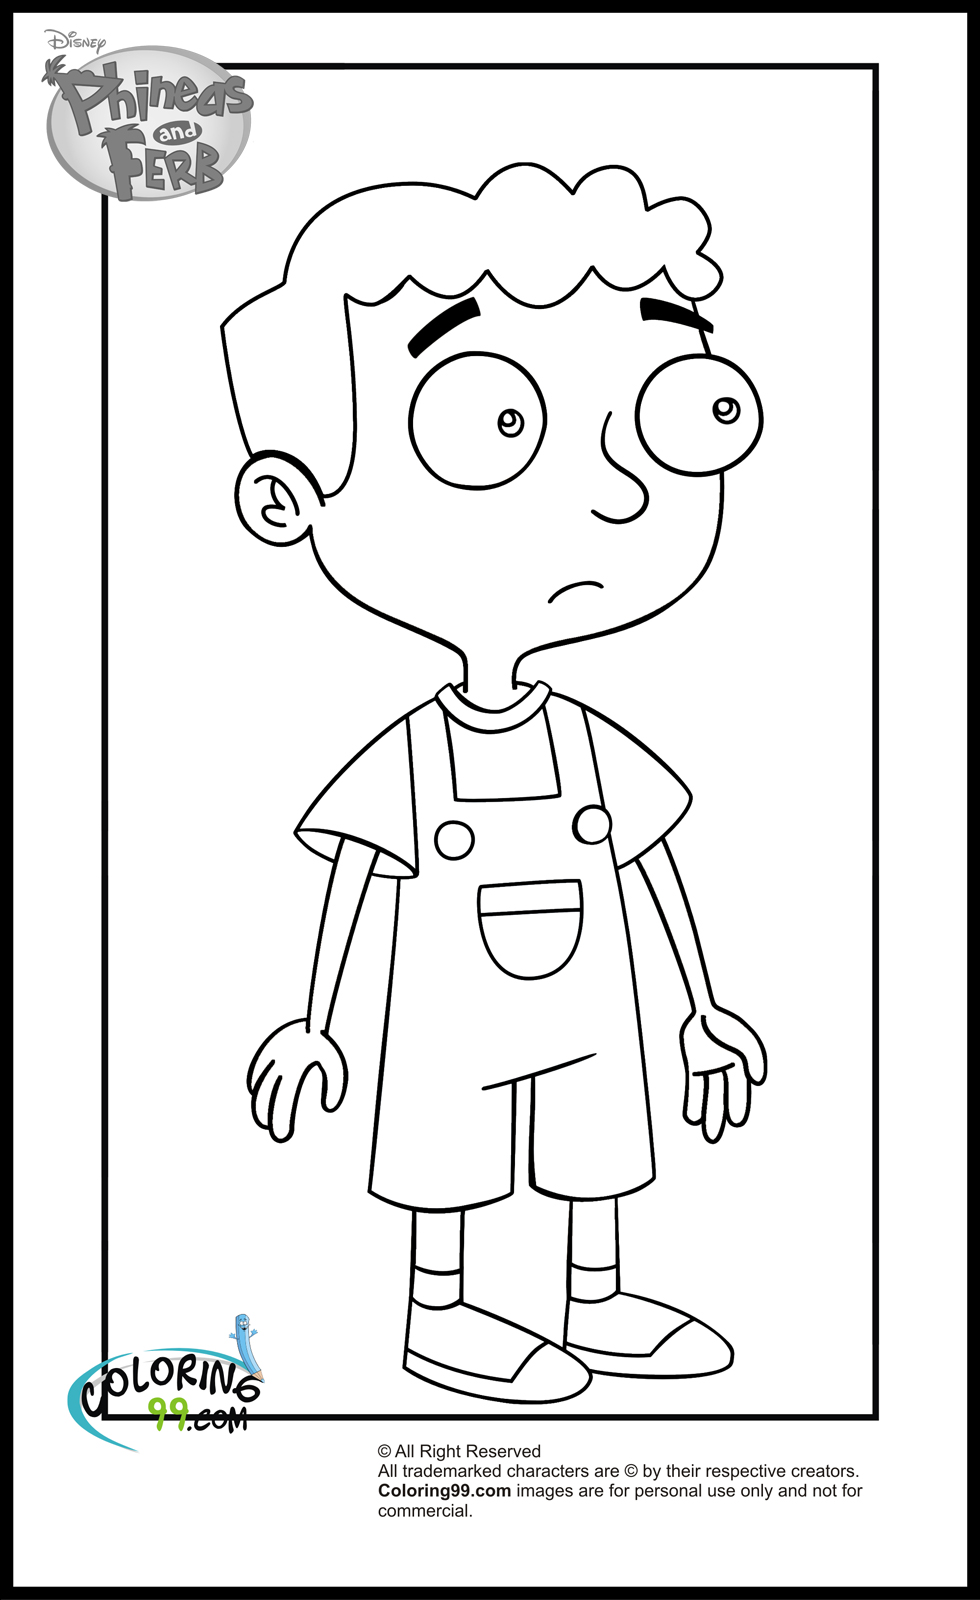 phinea and ferb coloring pages - photo#26